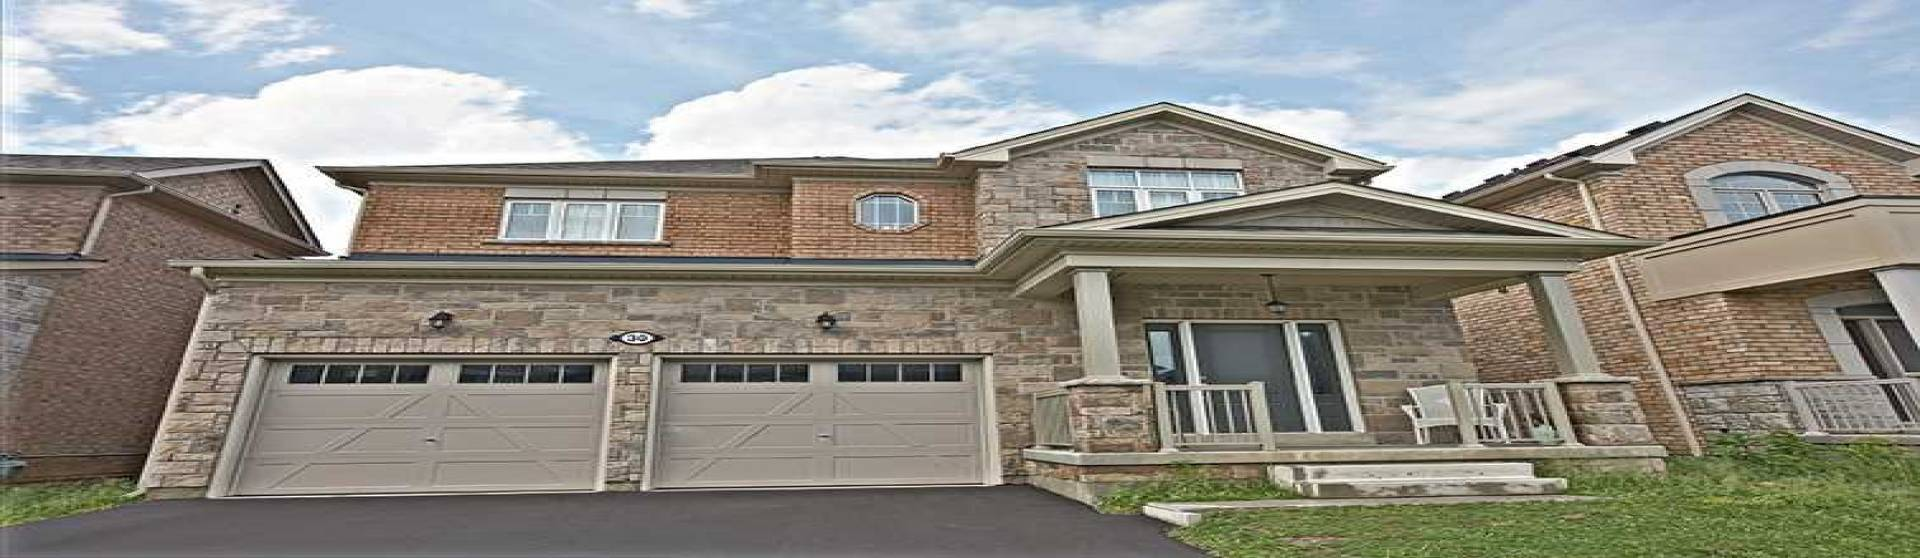 30 Sparkle Dr- Thorold- Ontario L0S 1A0, 4 Bedrooms Bedrooms, 14 Rooms Rooms,4 BathroomsBathrooms,Detached,Sale,Sparkle,X4792089